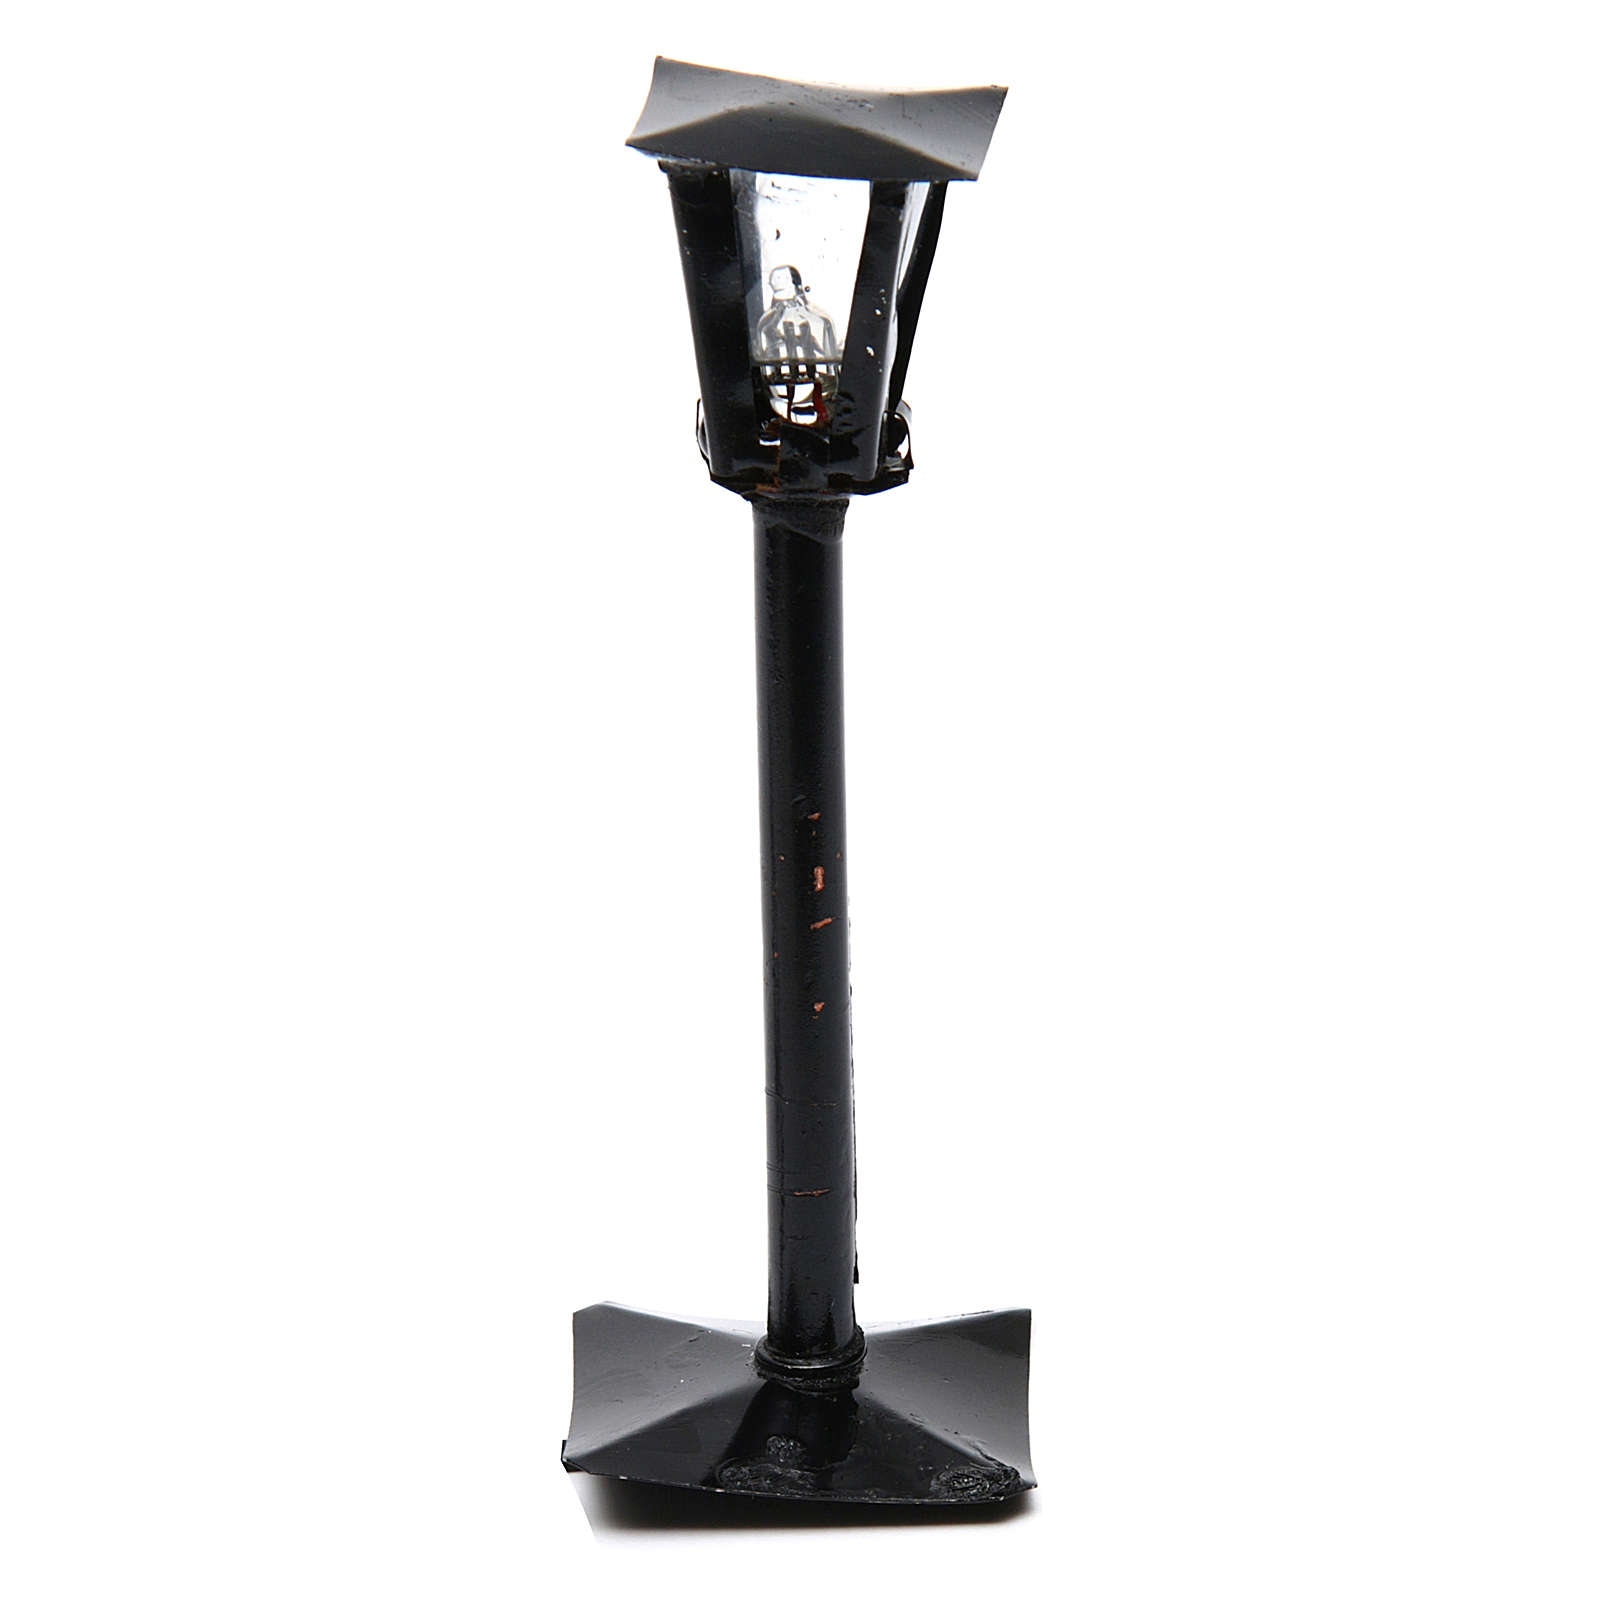 DYI Street Lamp with Lantern real height 11cm - 12V 4